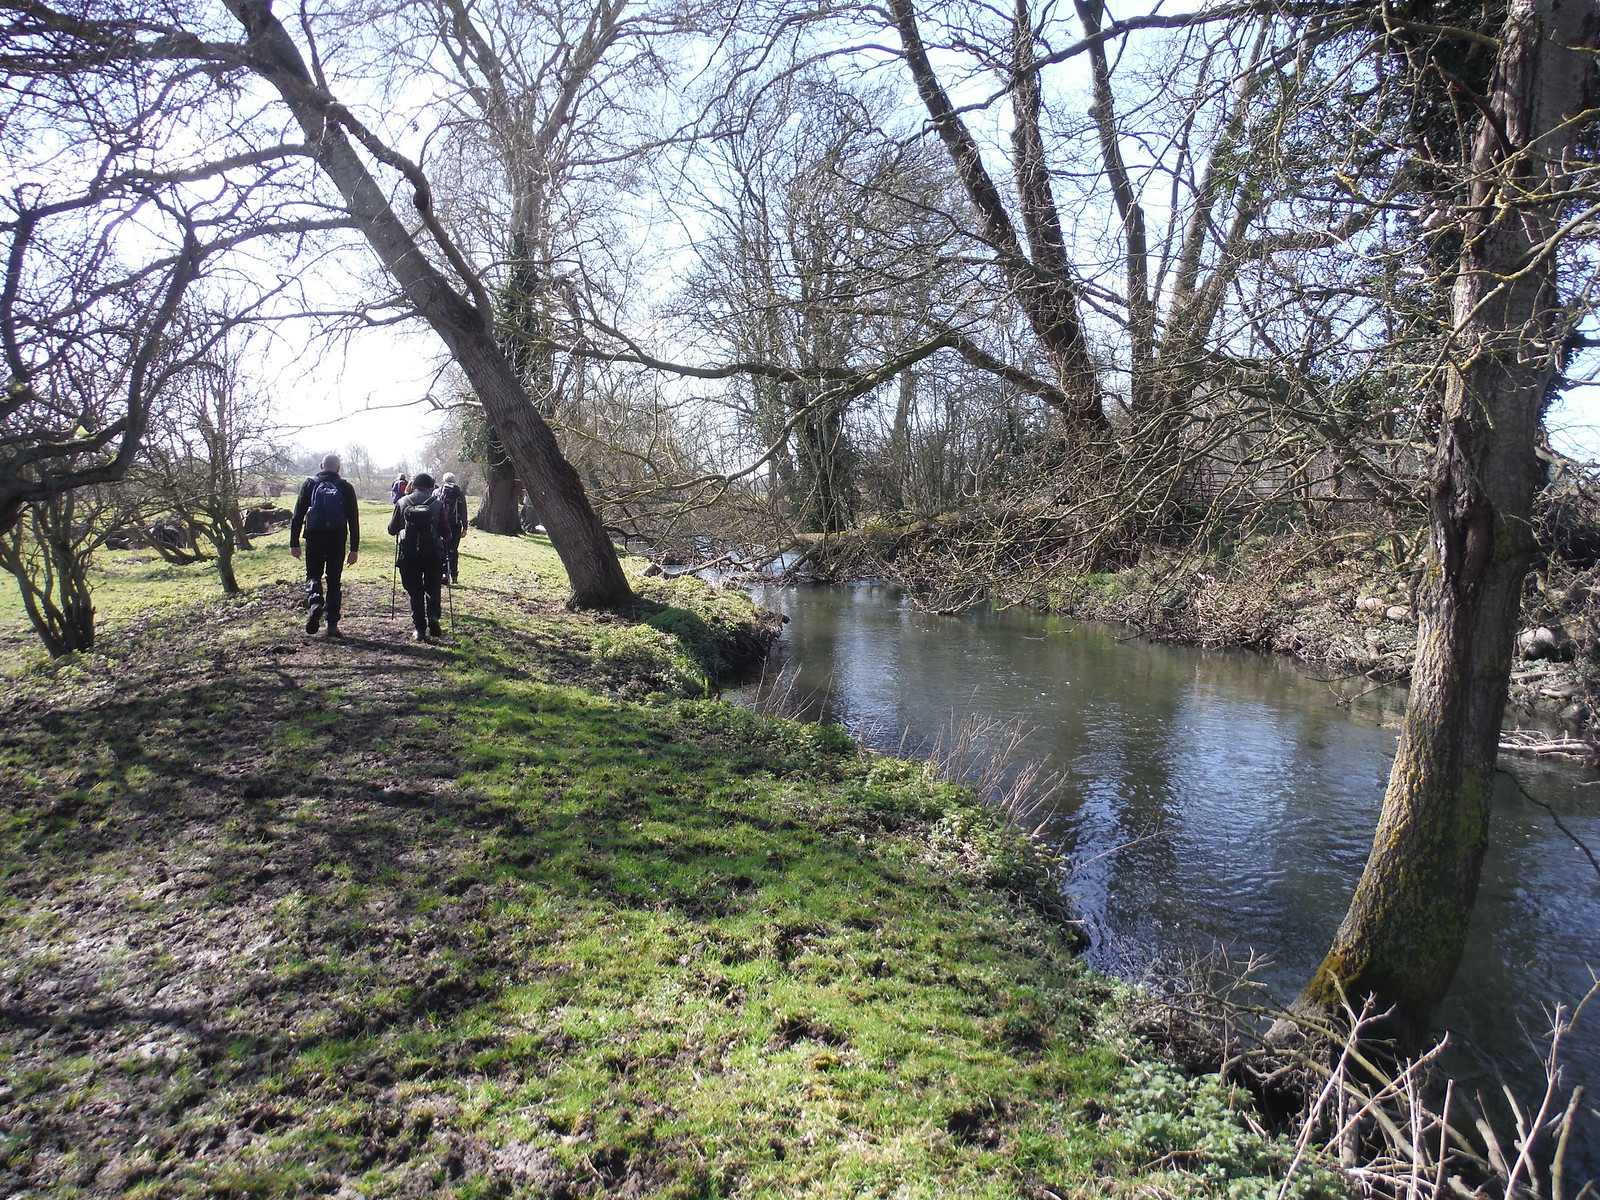 Beside the River Thame SWC Walk 193 Haddenham to Aylesbury (via Gibraltar and Ford)